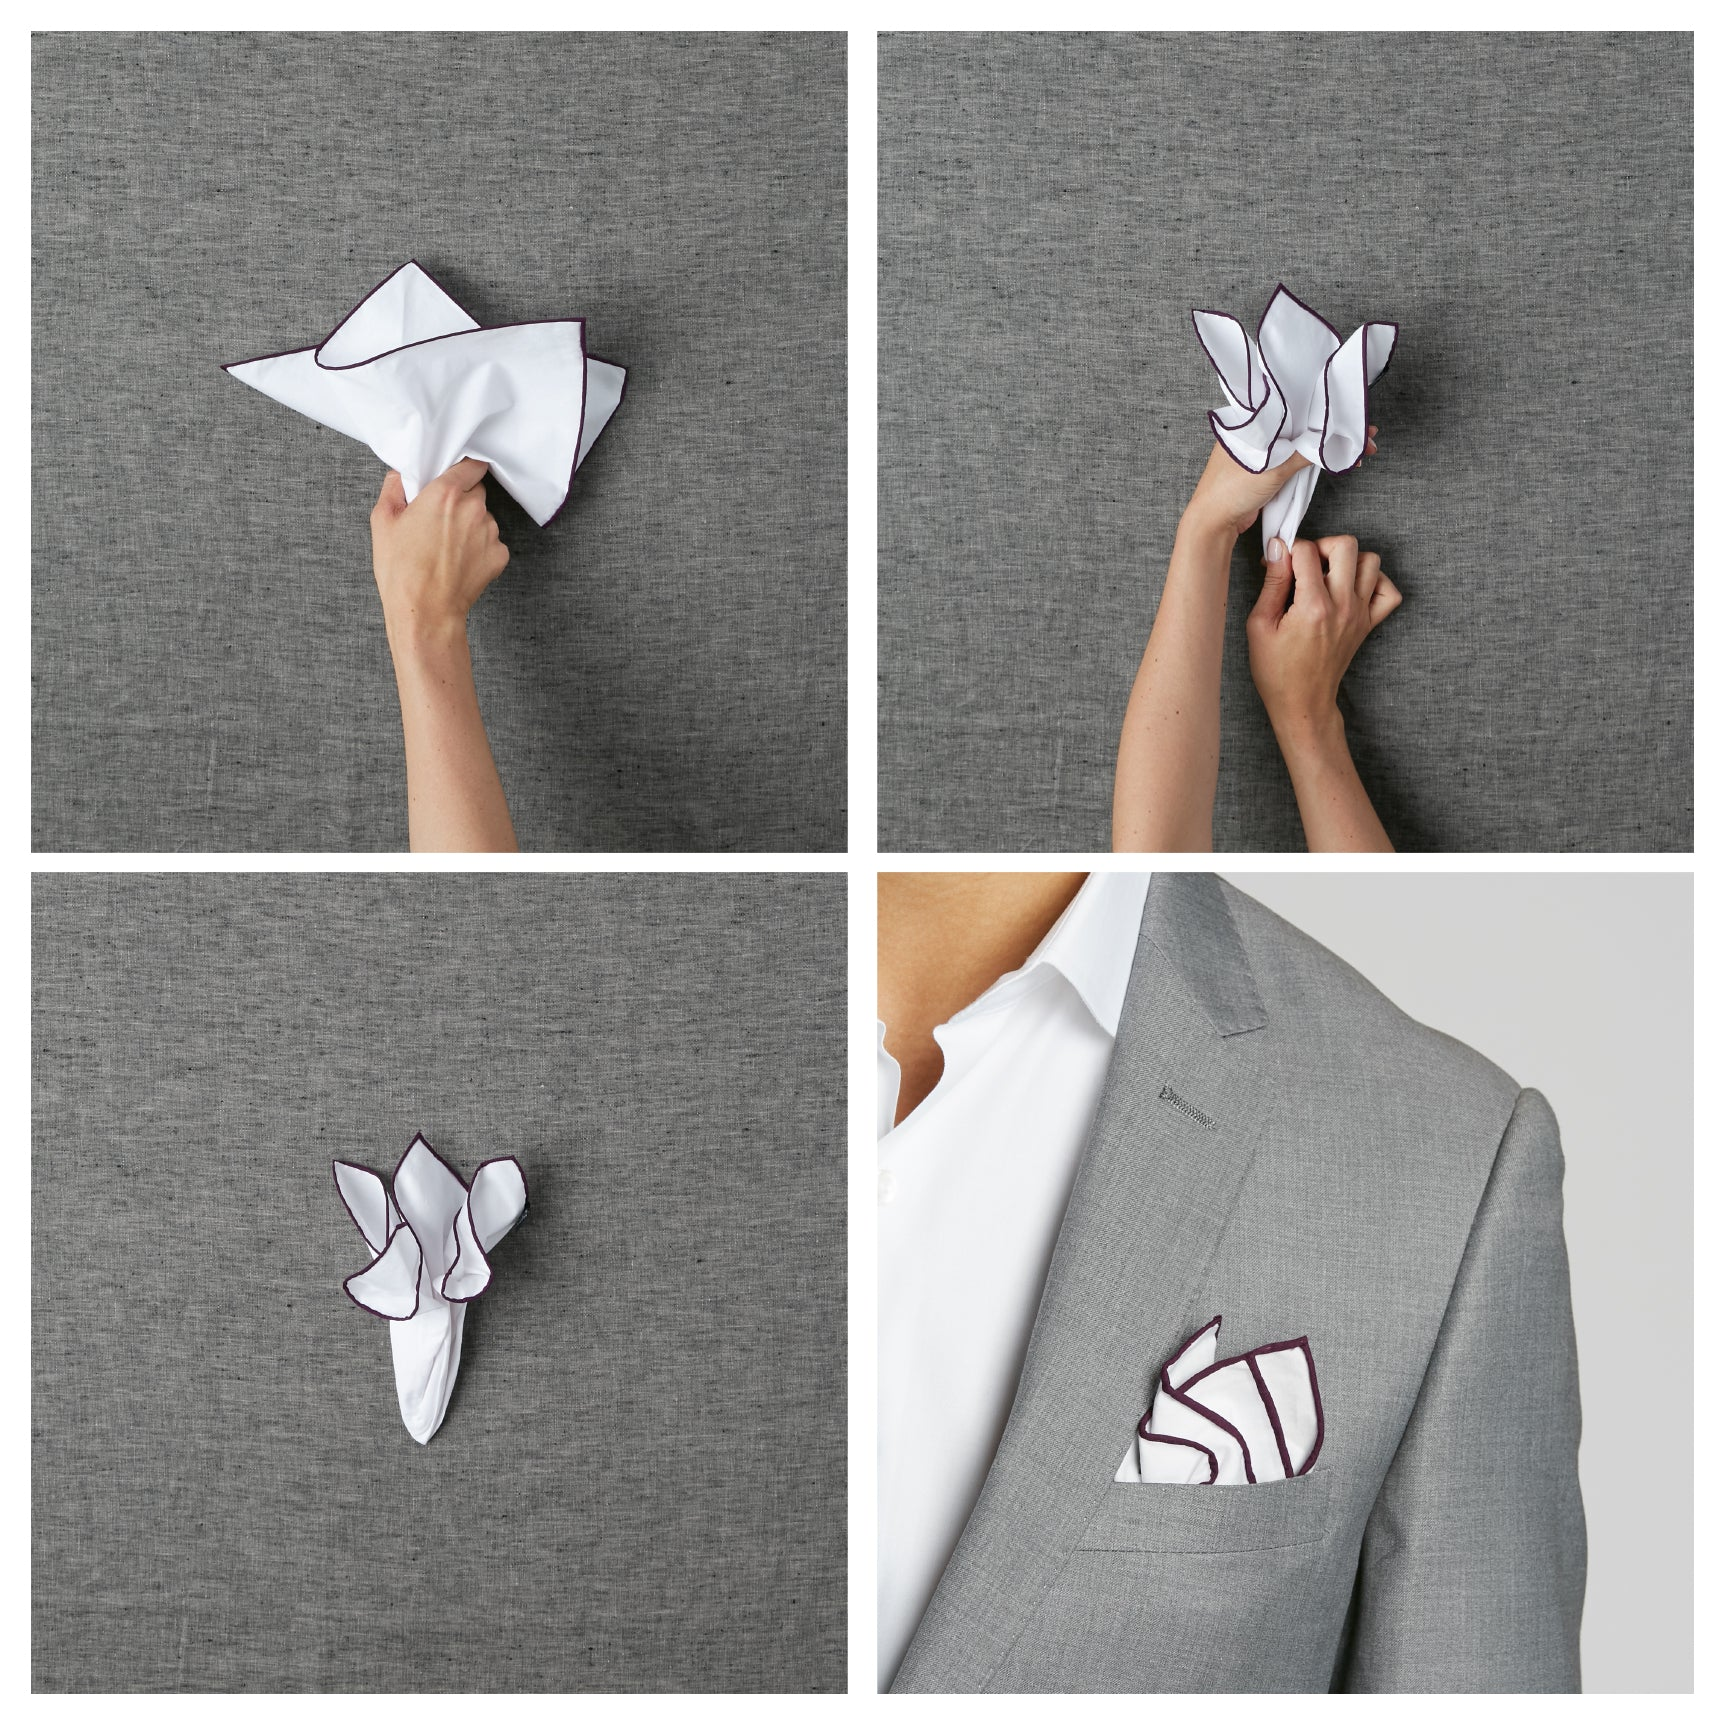 Wedding suits for men. How to fold a pocket square.